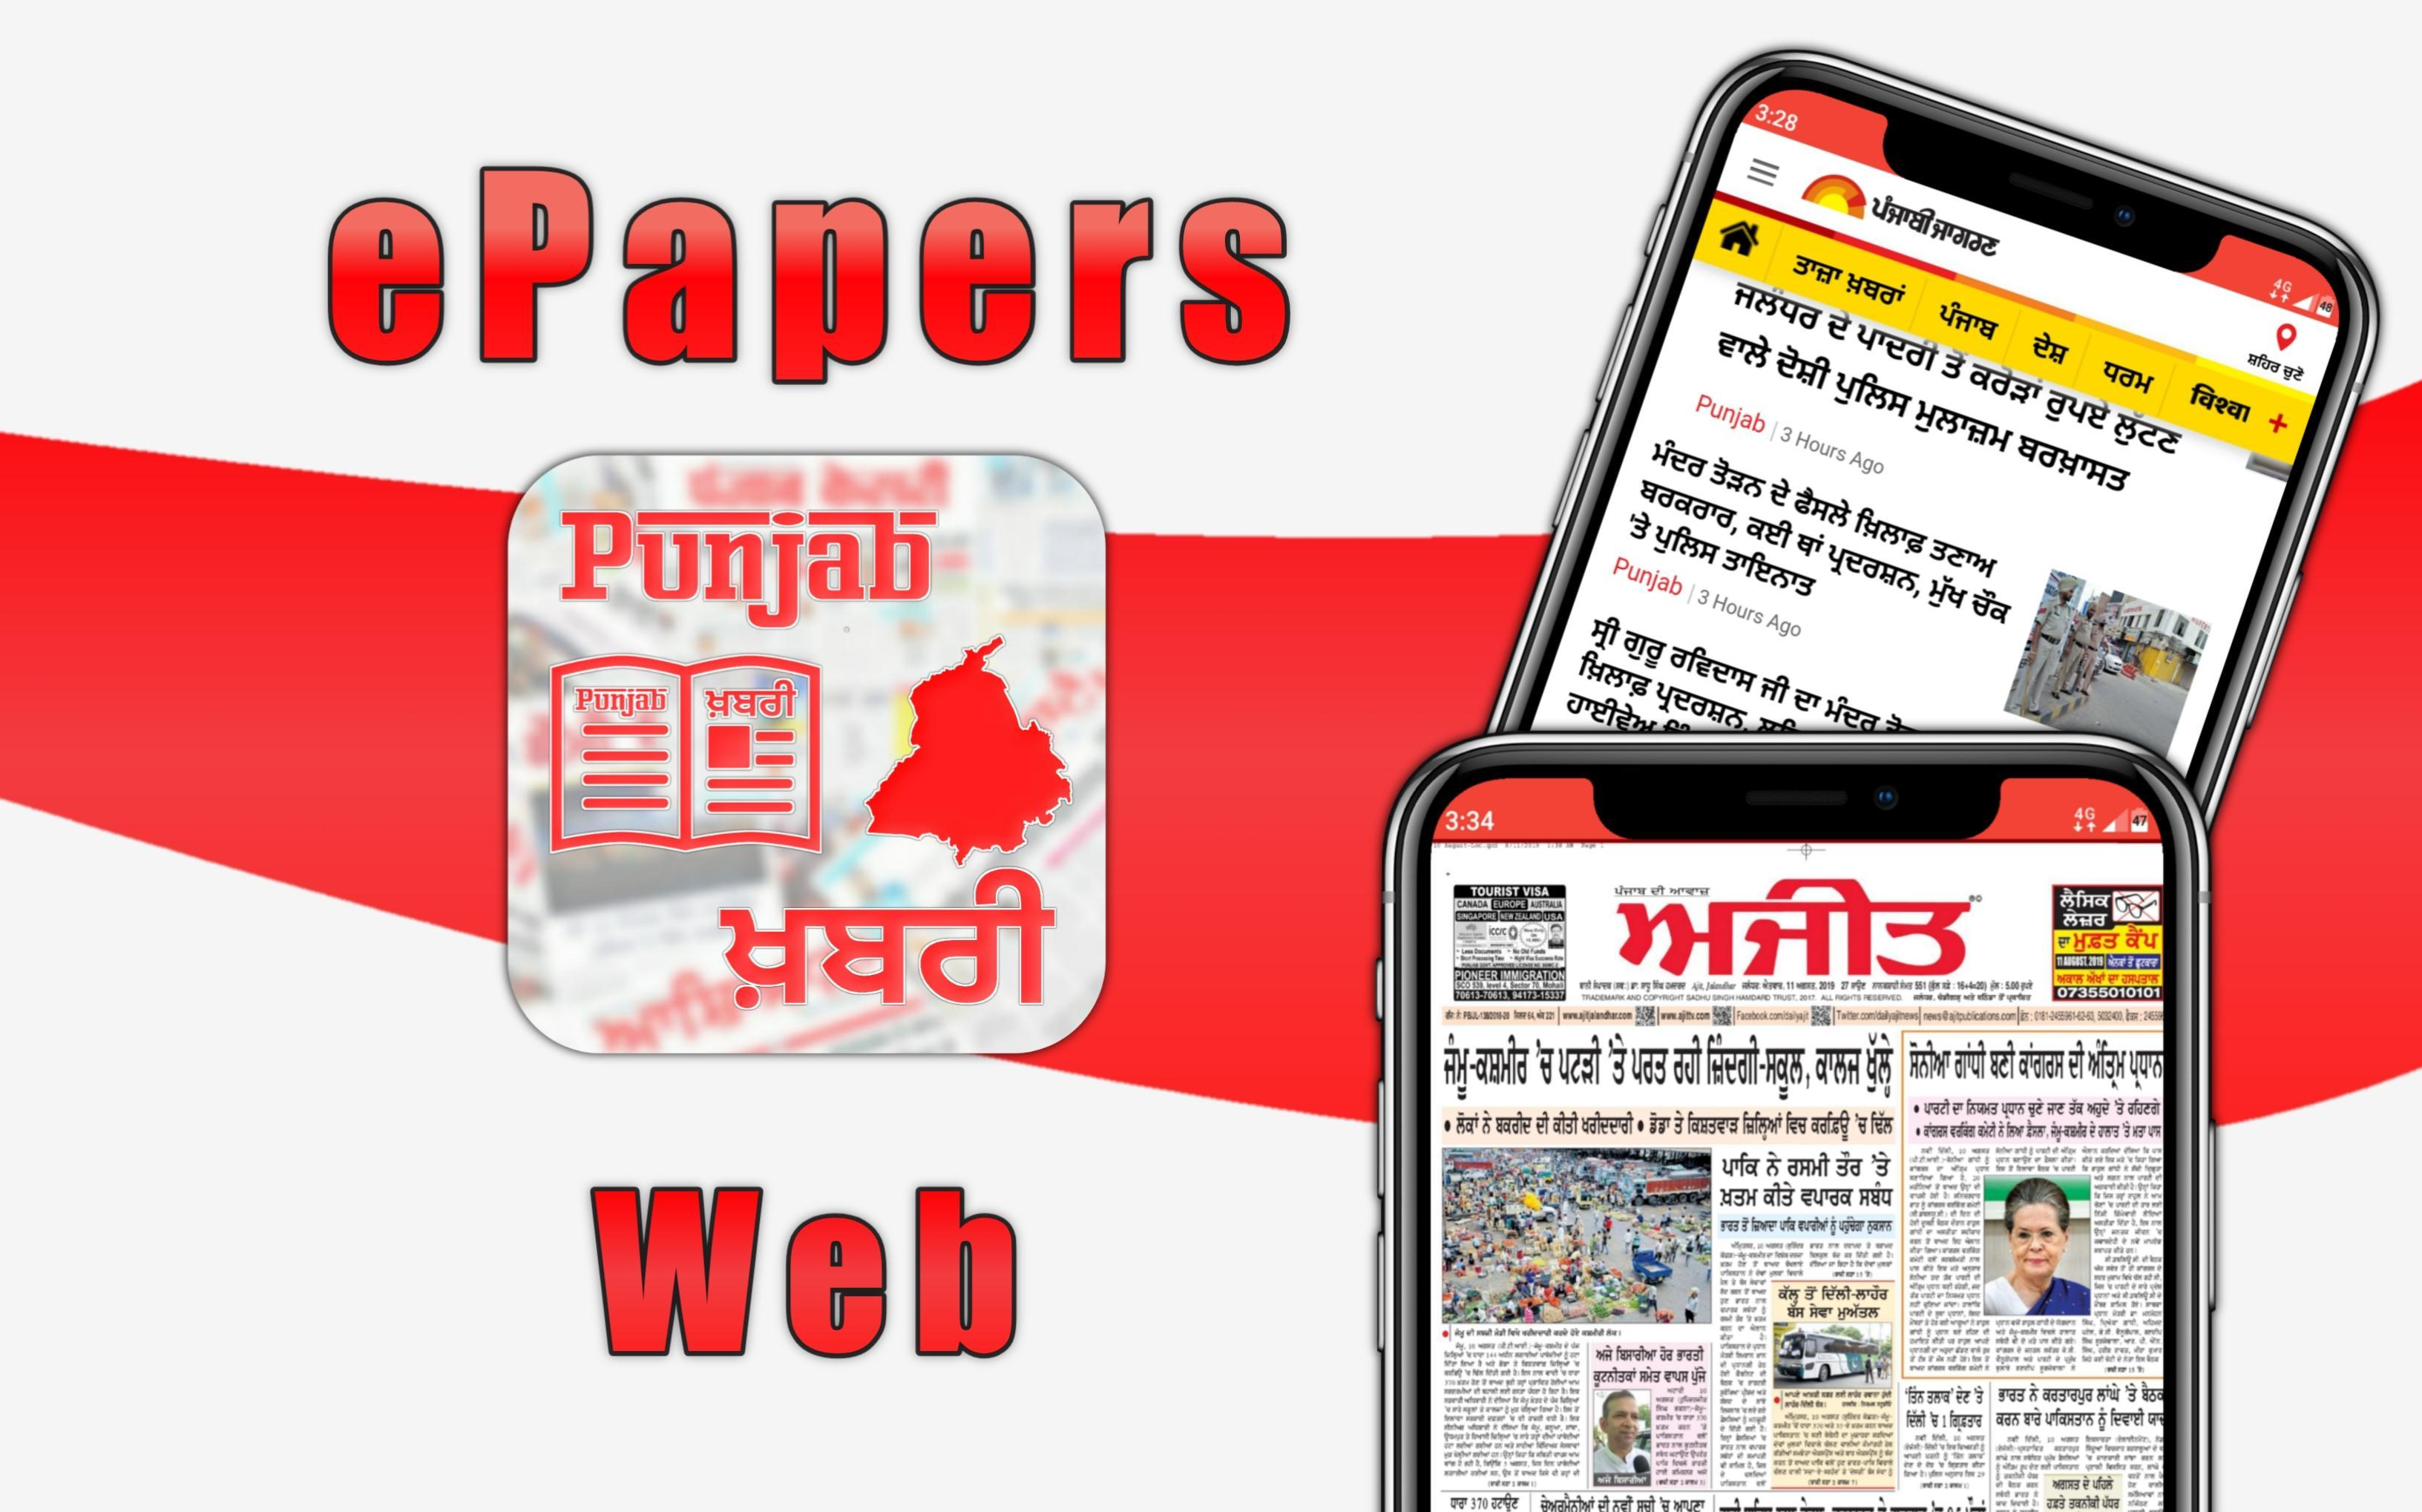 Punjabi News Papers All in One App - Punjab Khabri for Android - APK  Download